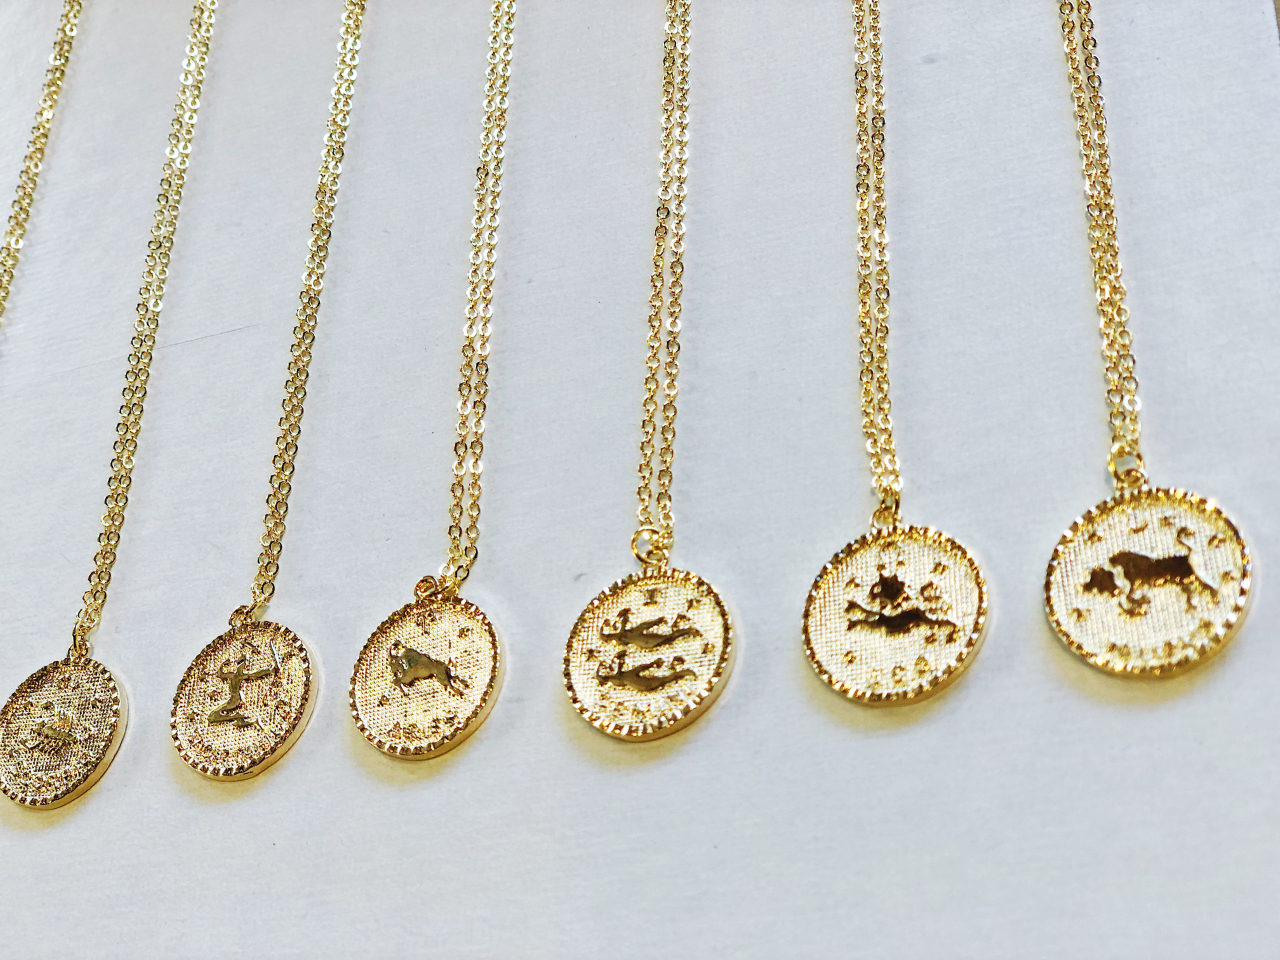 The Sahar Gold Dipped Horoscope Coin Necklace